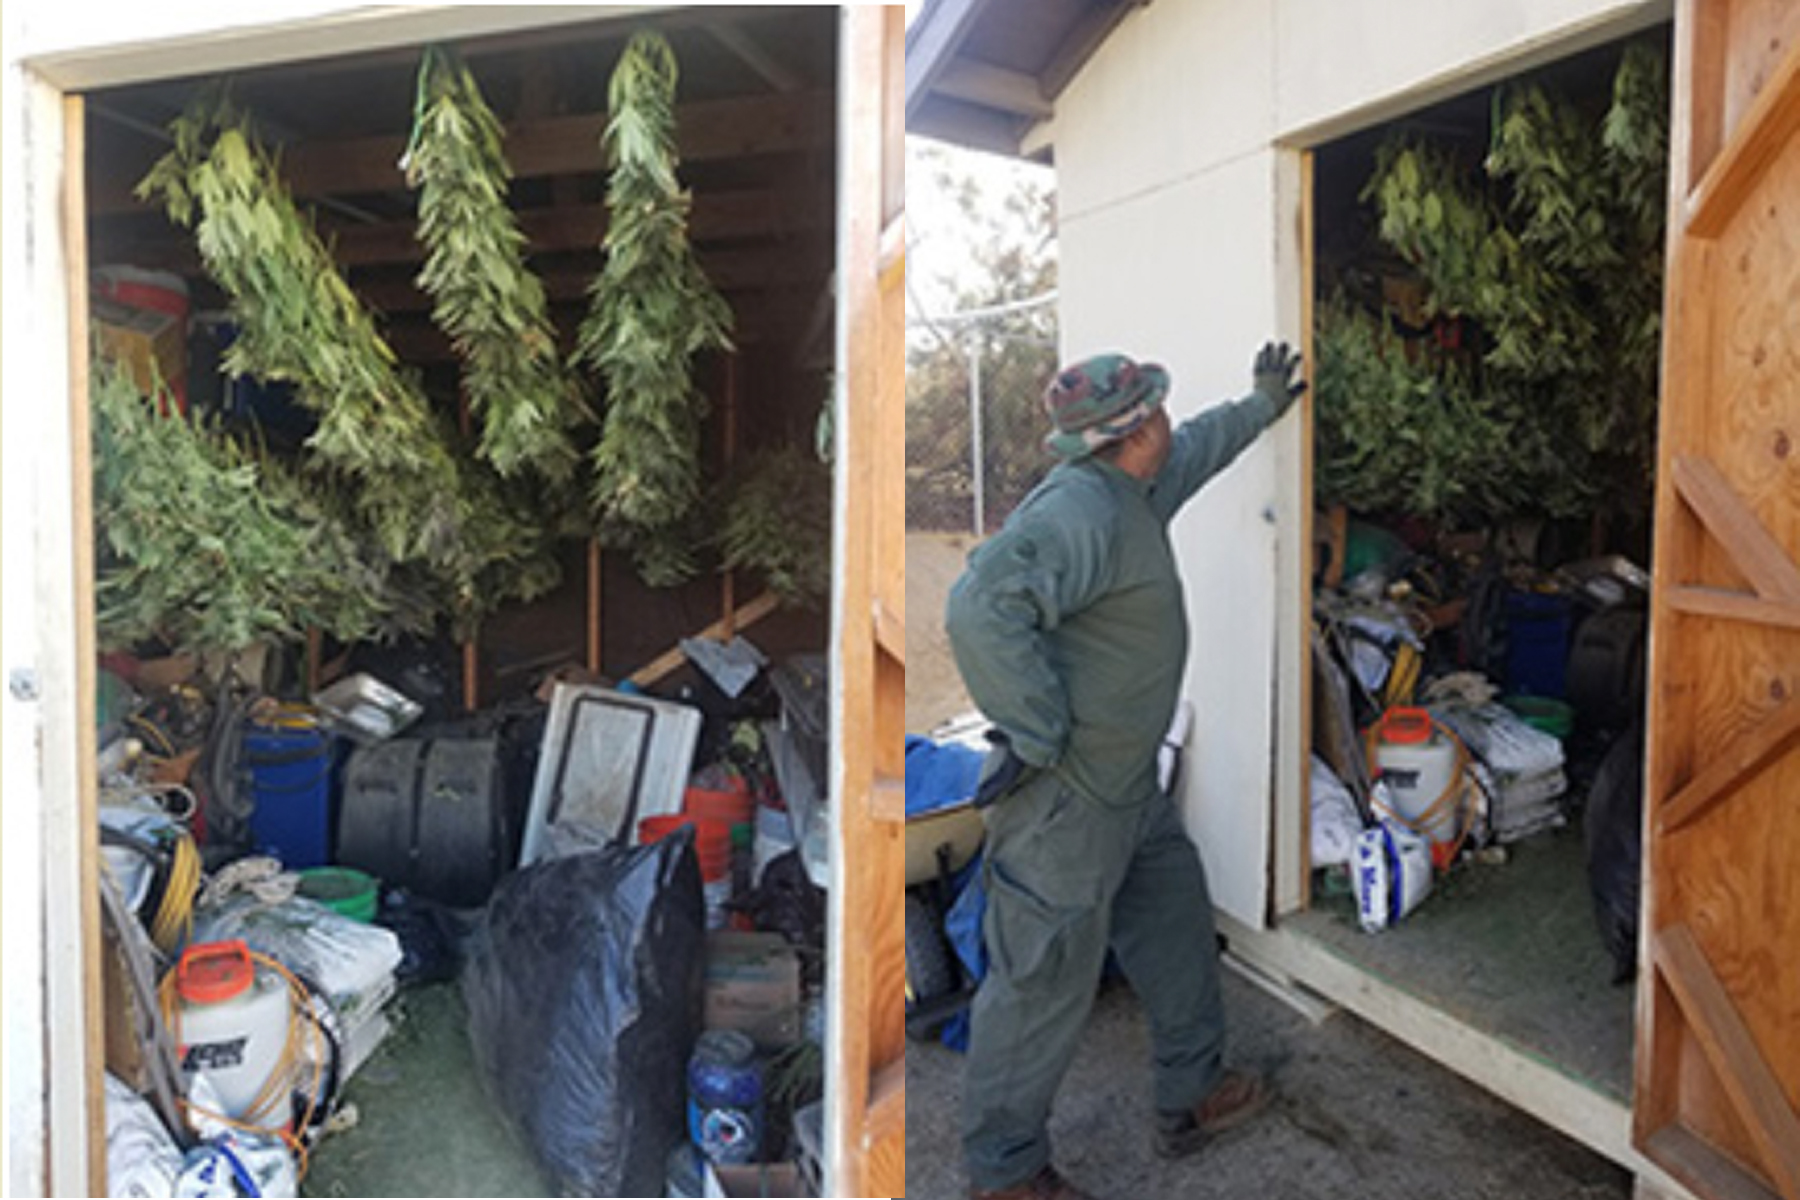 Marijuana grown illegally in Anza on Nov. 26, 2019. (Credit: Riverside County Sheriff's Department)